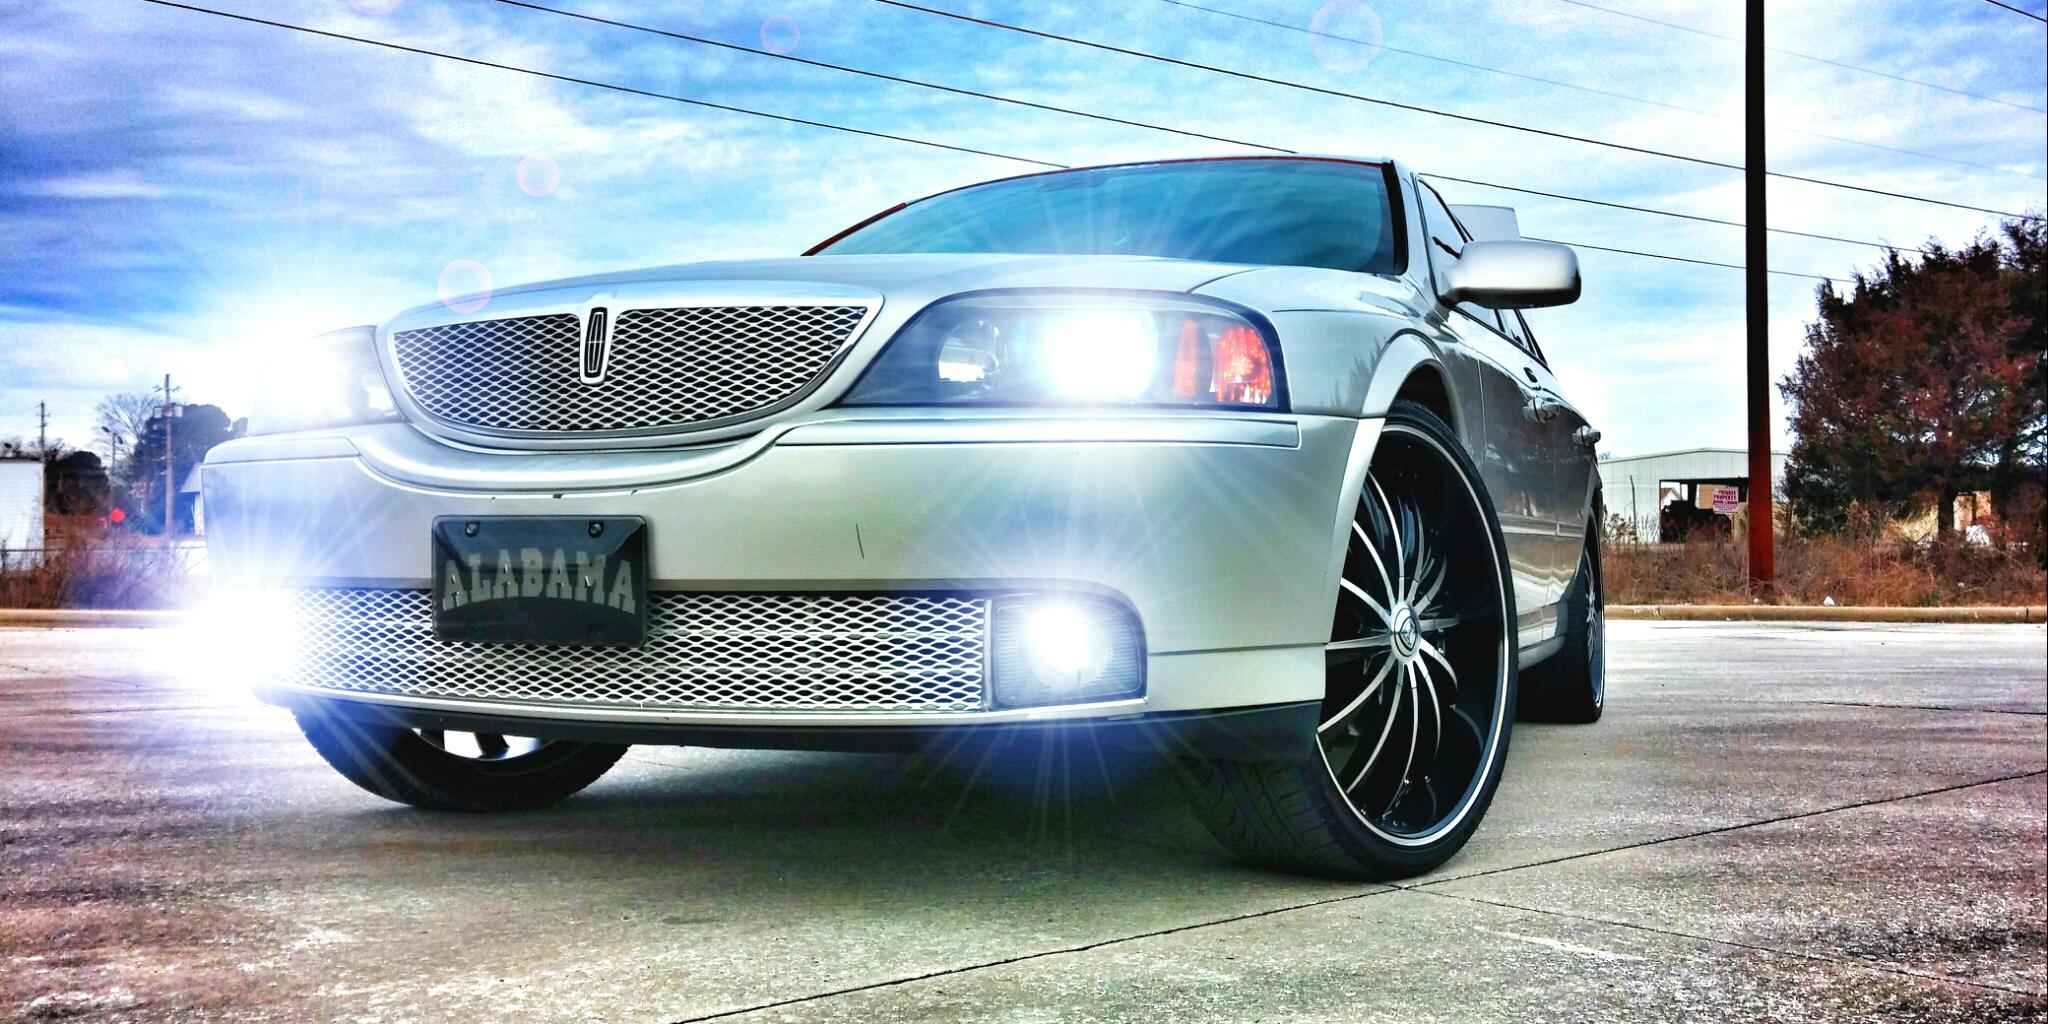 GeRsH22s's 2004 Lincoln LS